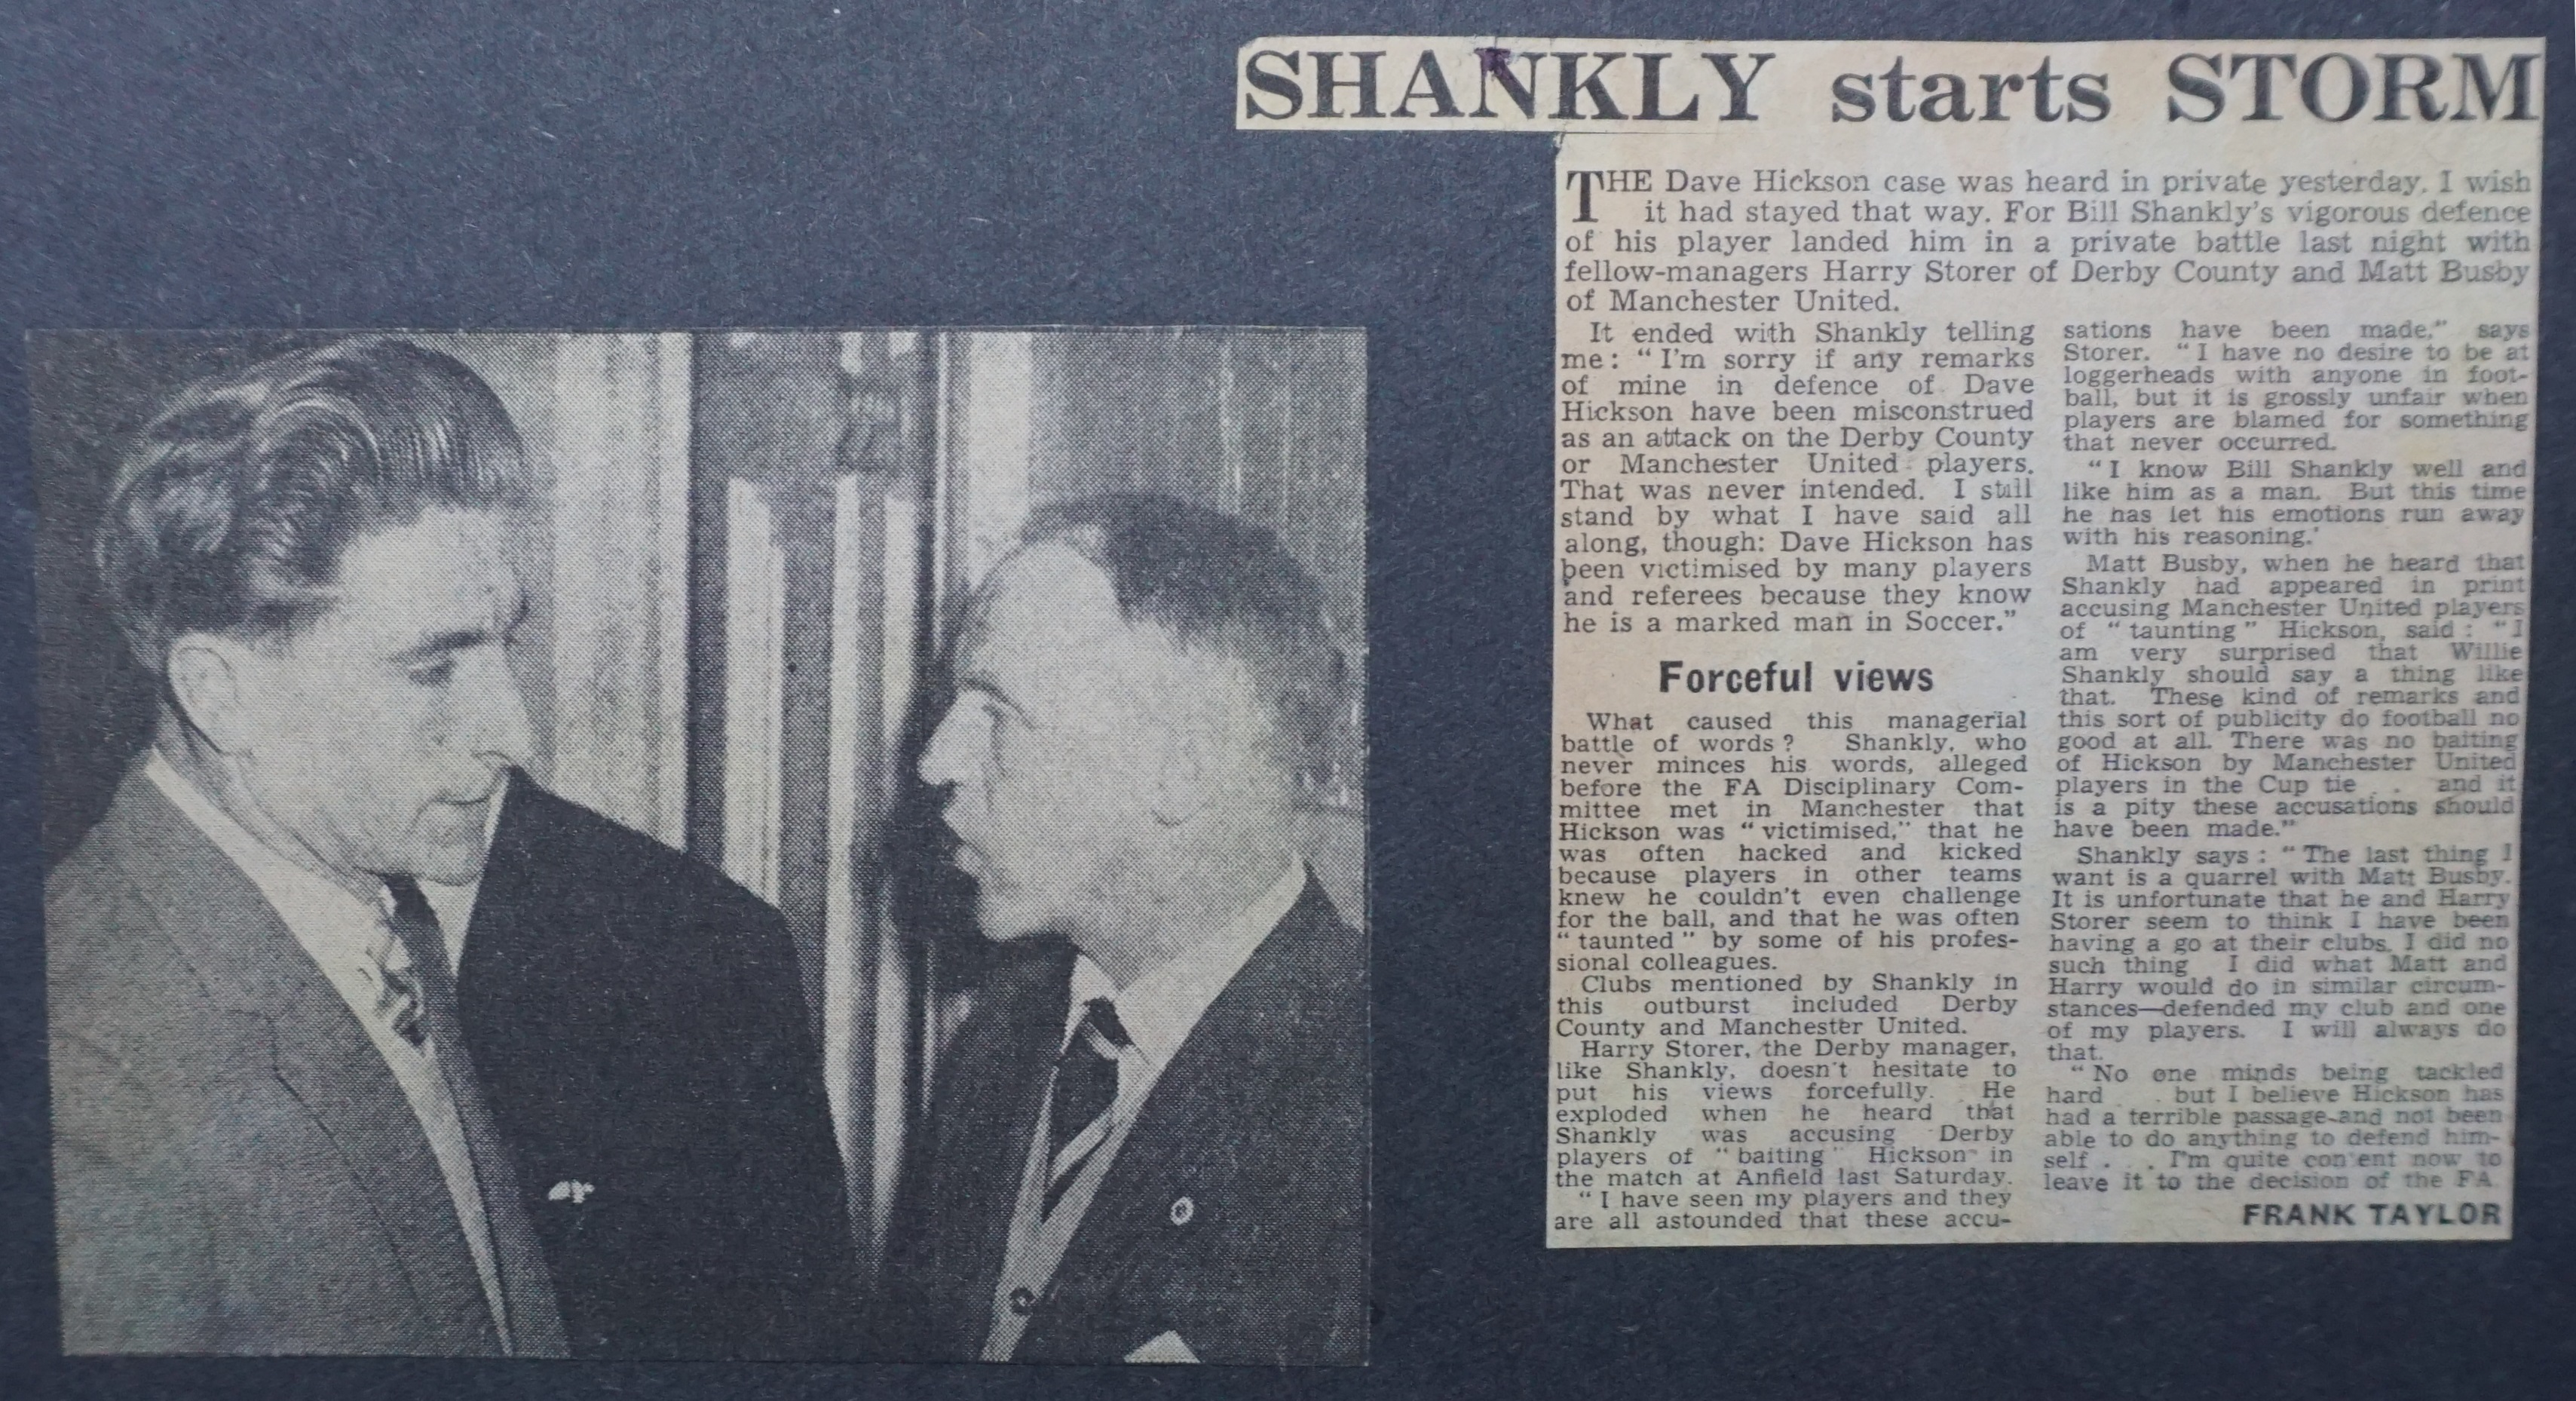 Shankly starts storm